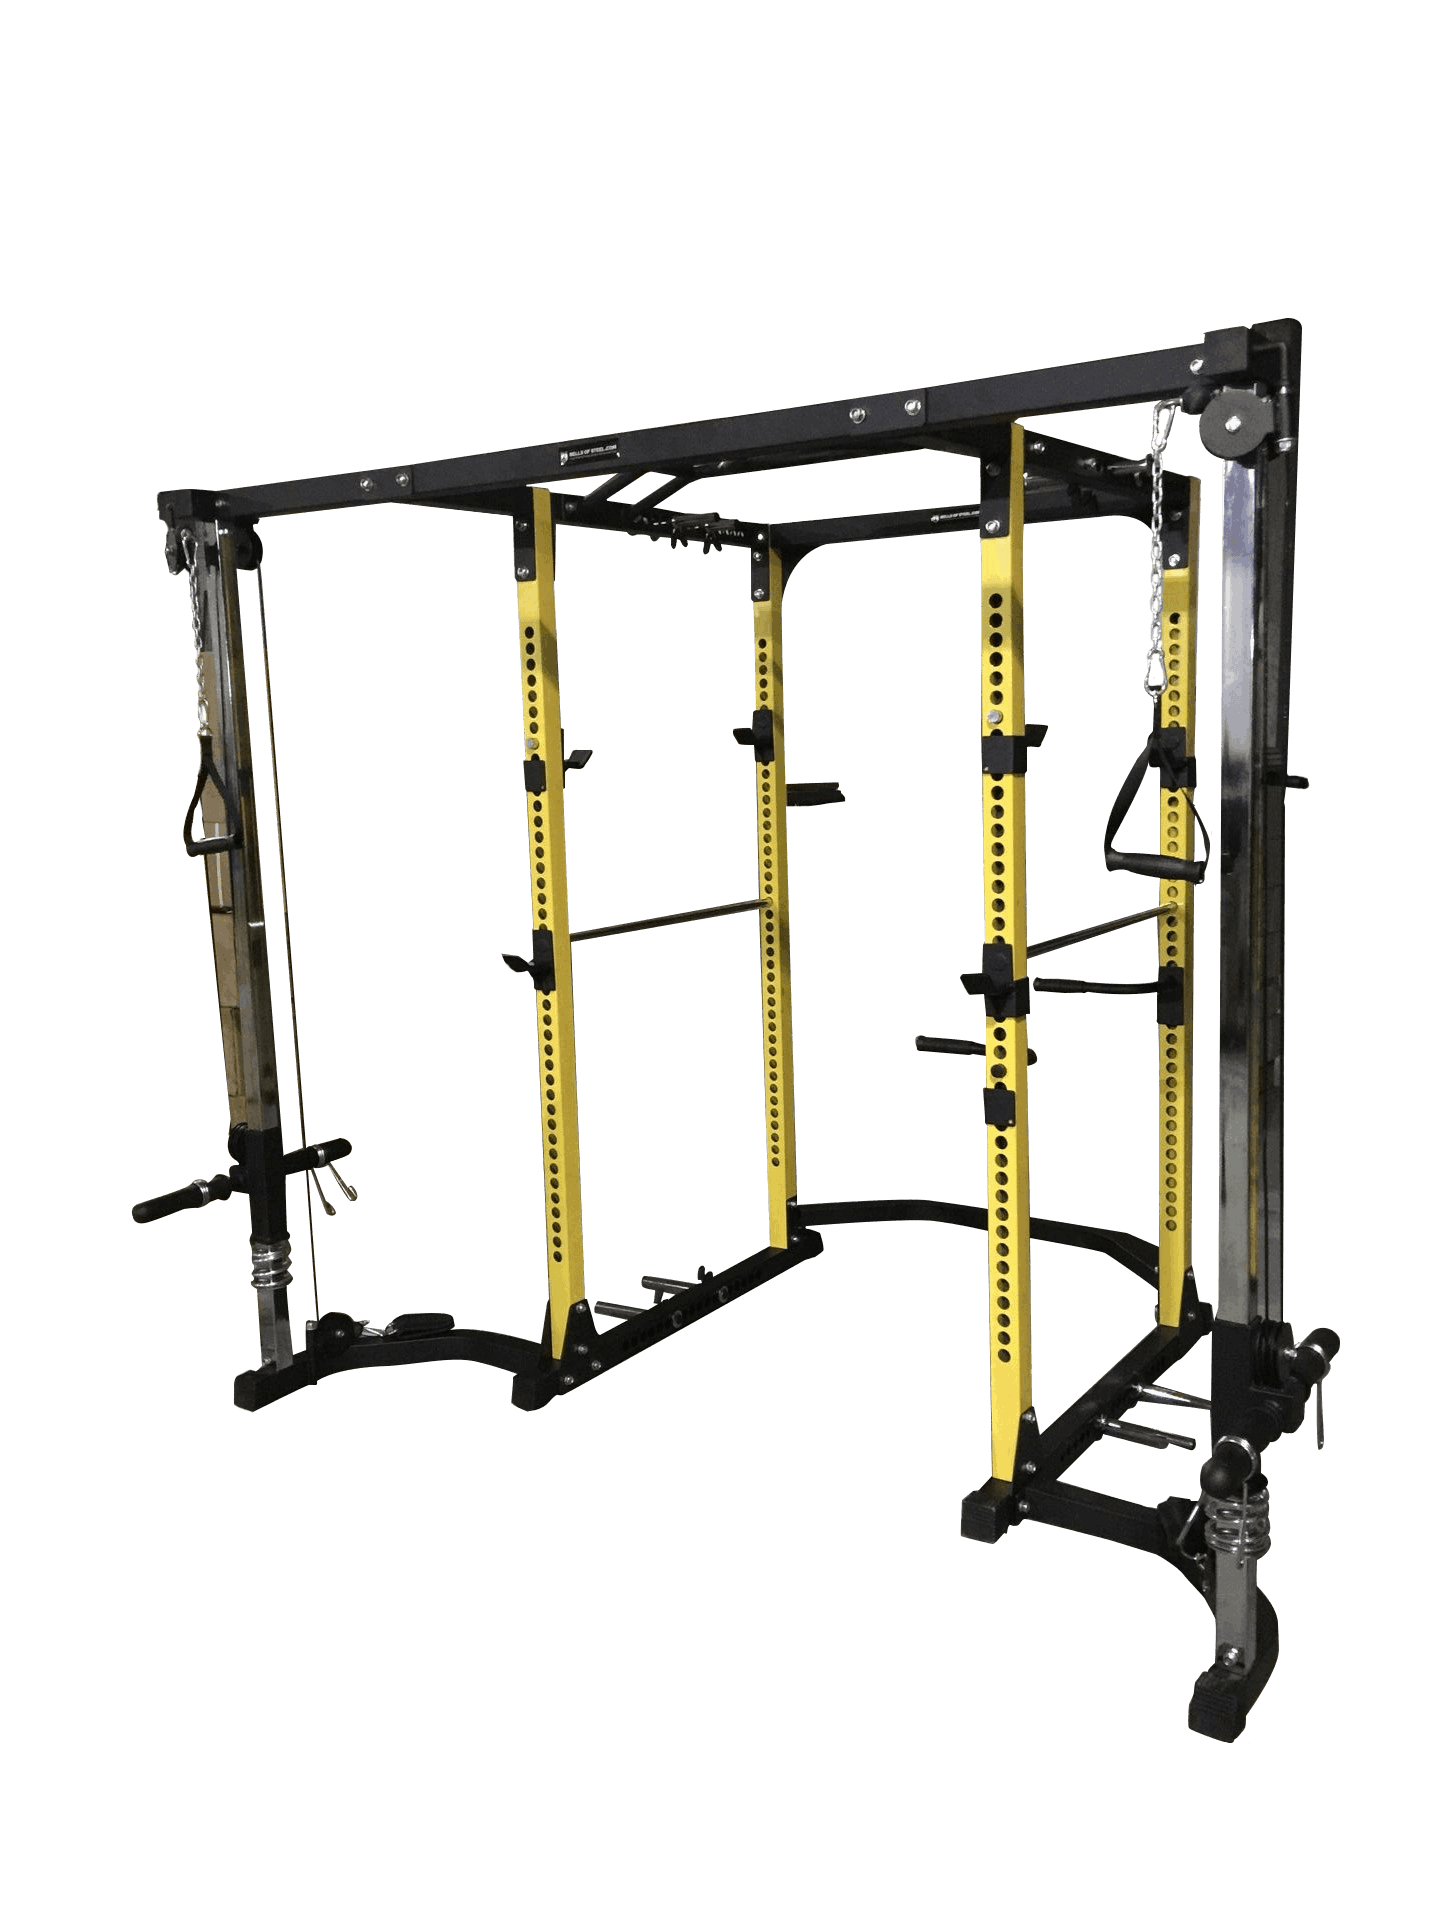 Cable Crossover - Light Commercial Power Rack - Bells of Steel